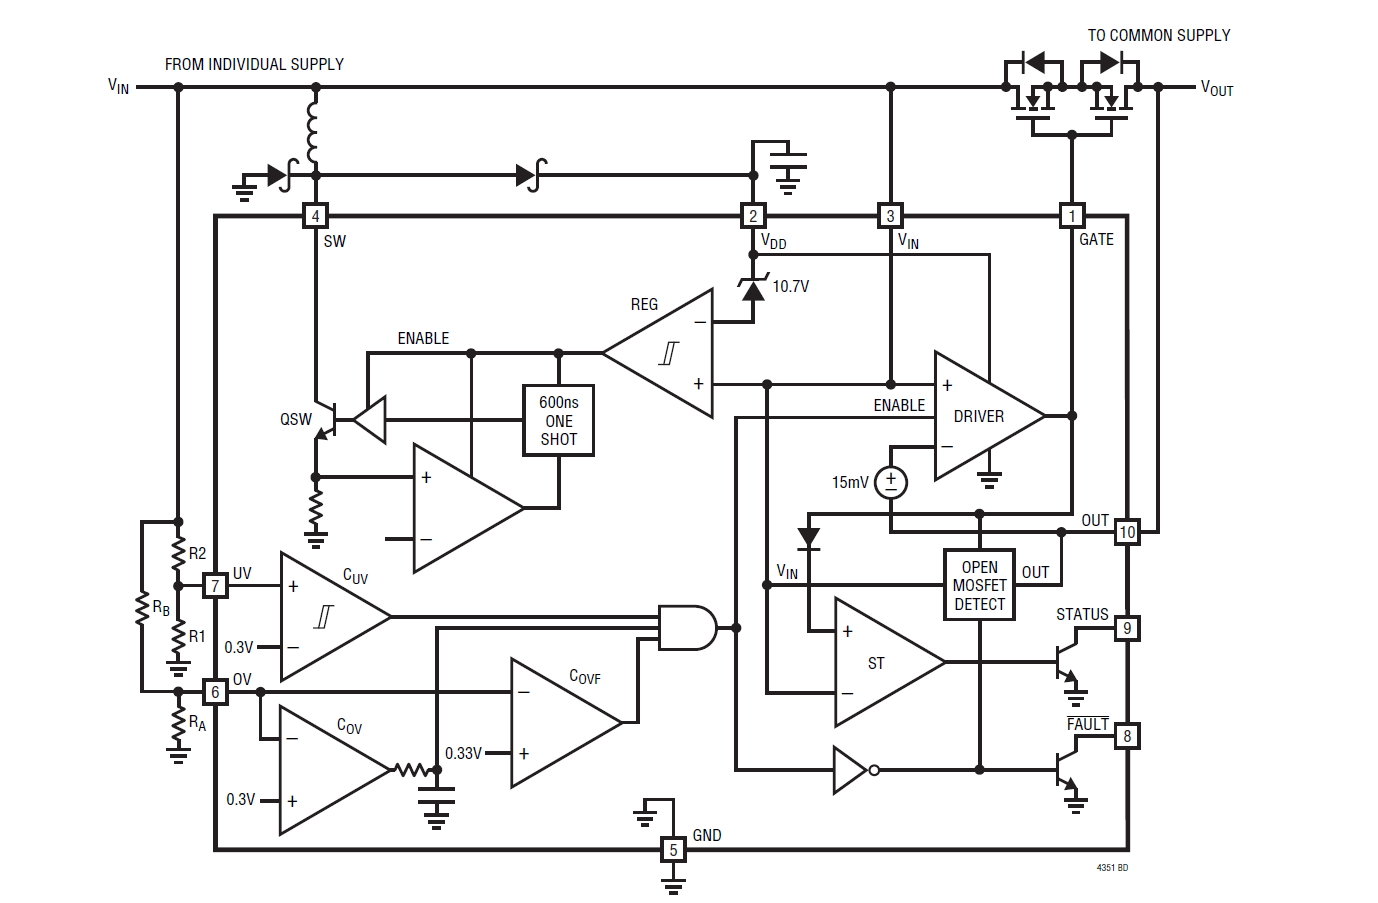 Does Mosfet Let Current Flow Through Source To Drain As It